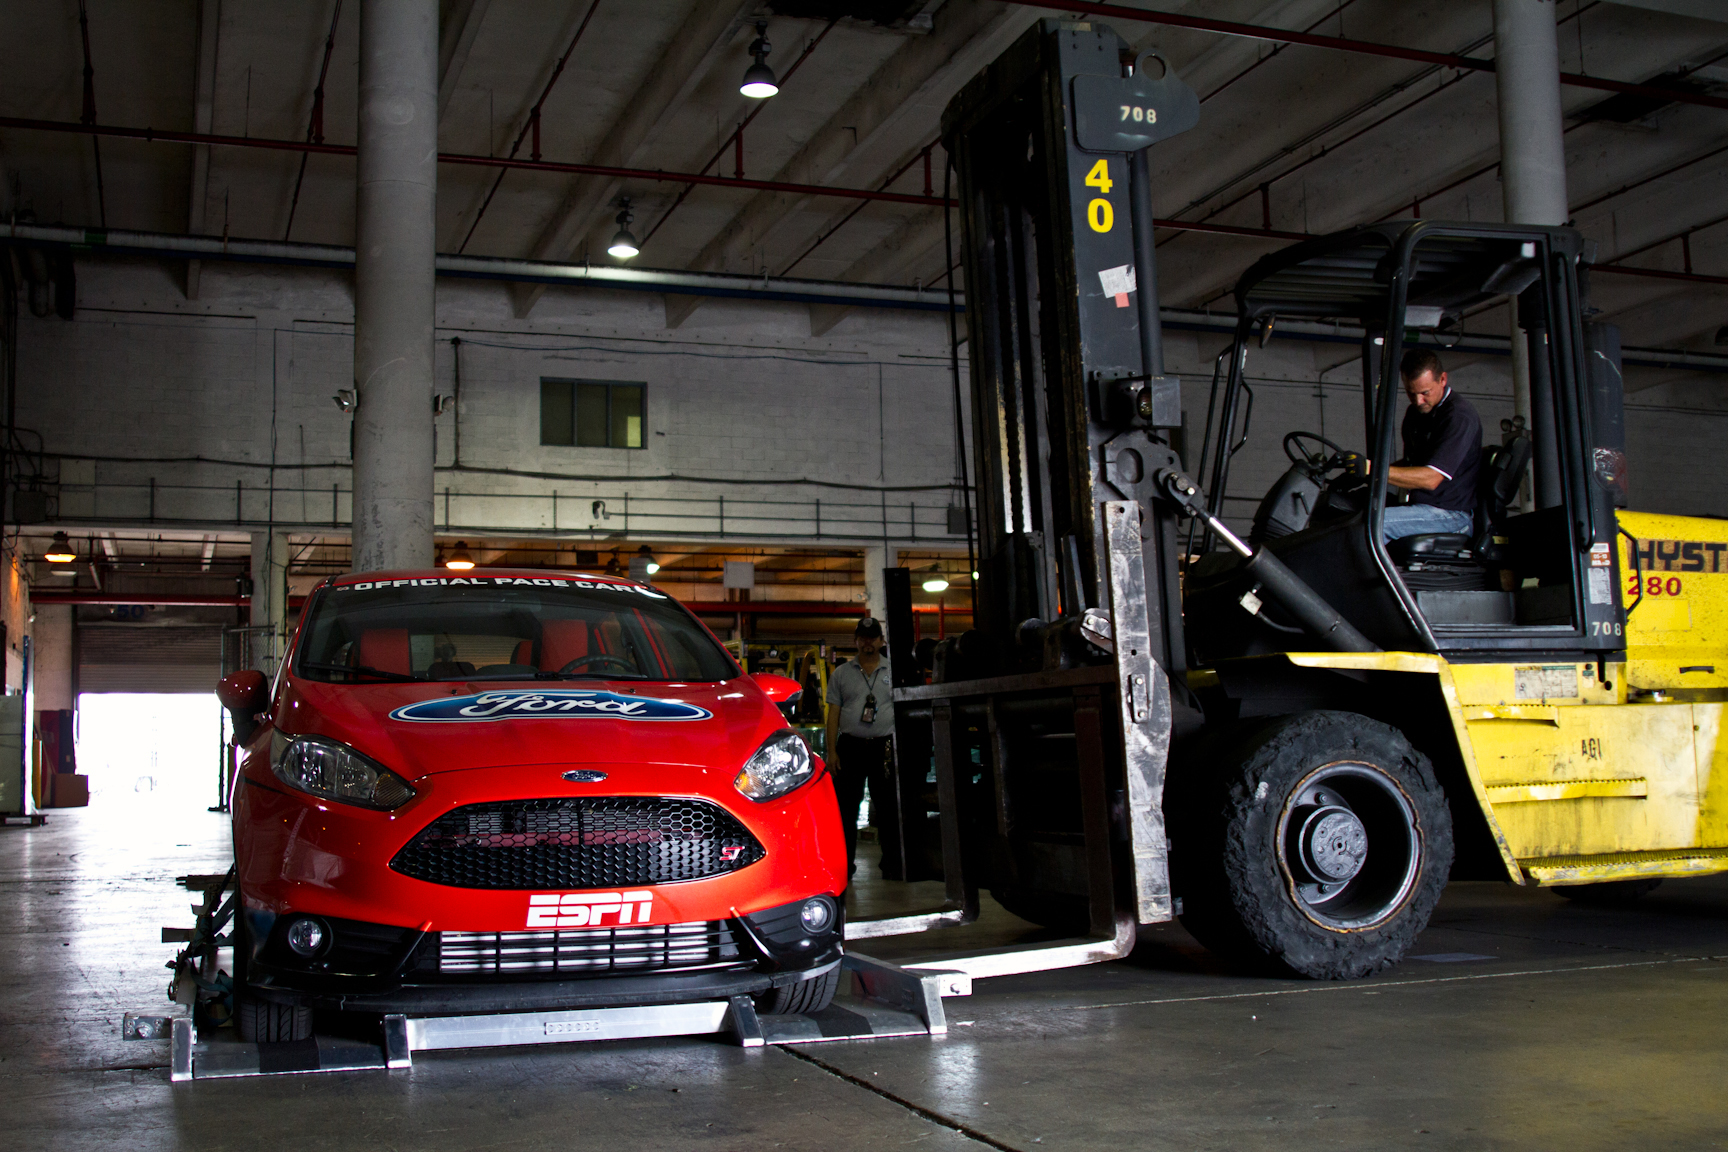 The official X Games RallyCross pace car, a Ford Fiesta, is about to get a lift during the final loading process in Miami.